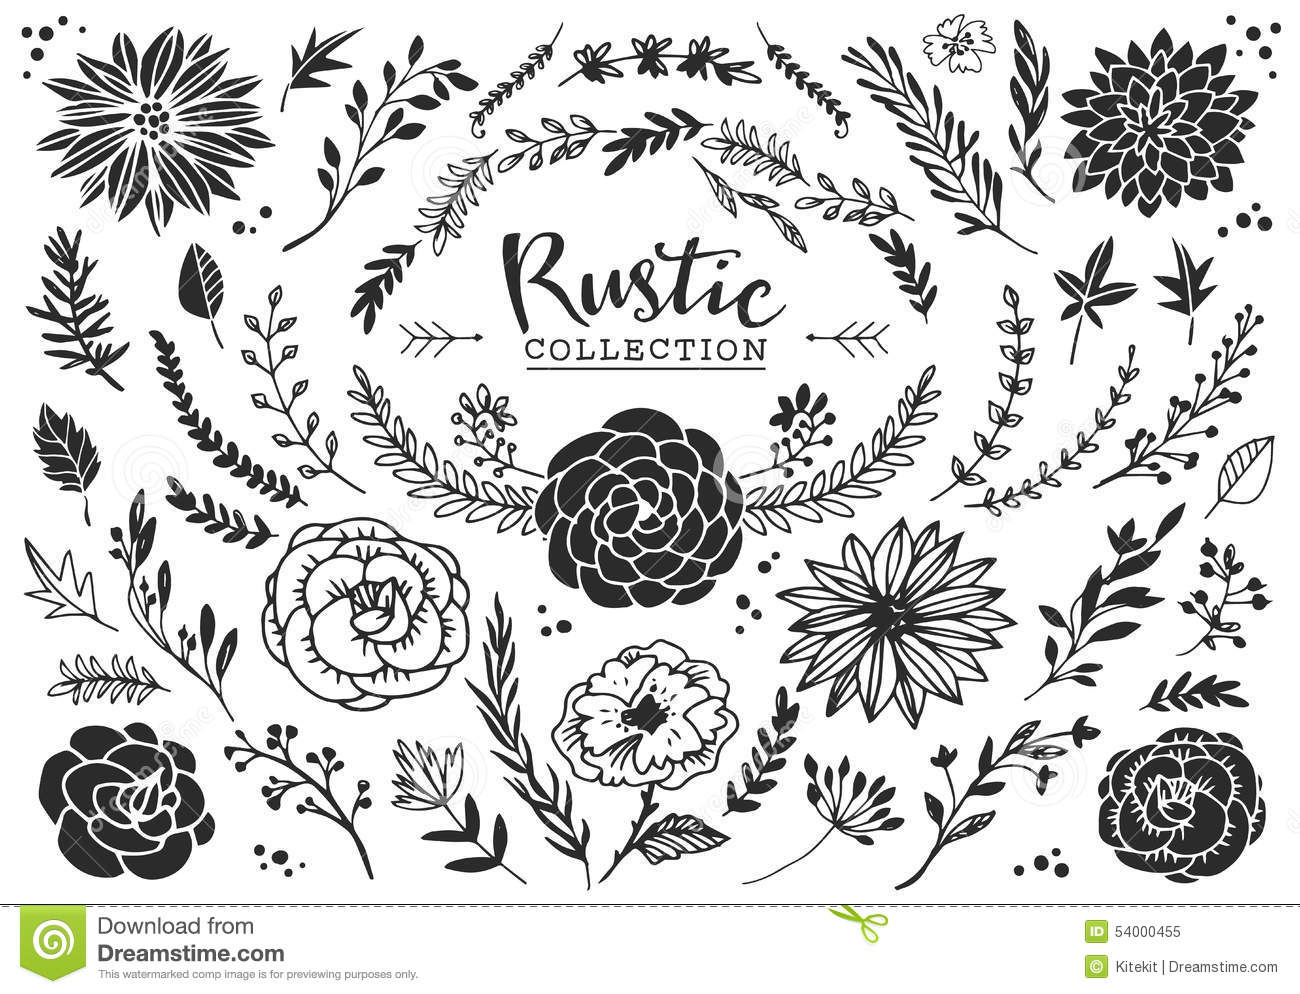 Rustic Decorative Plants And Flowers Collection Hand